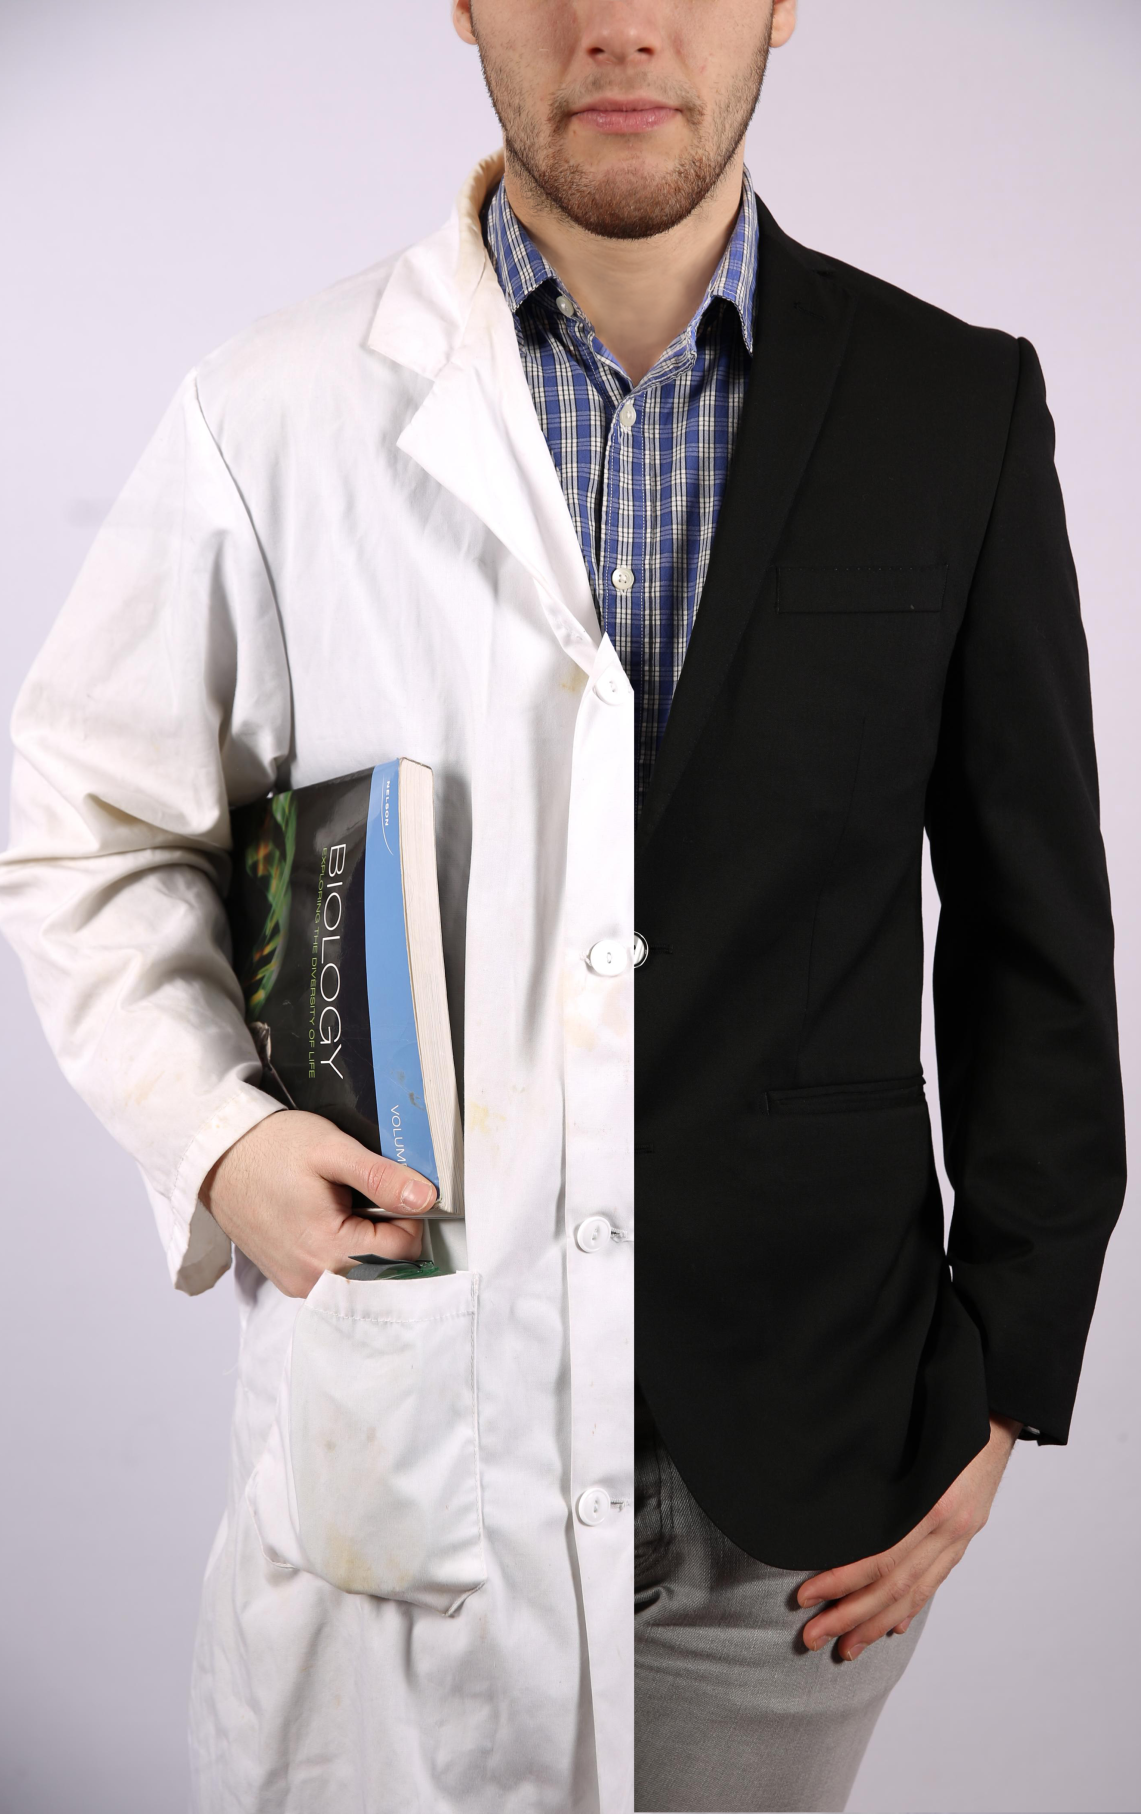 Medical school feature photo